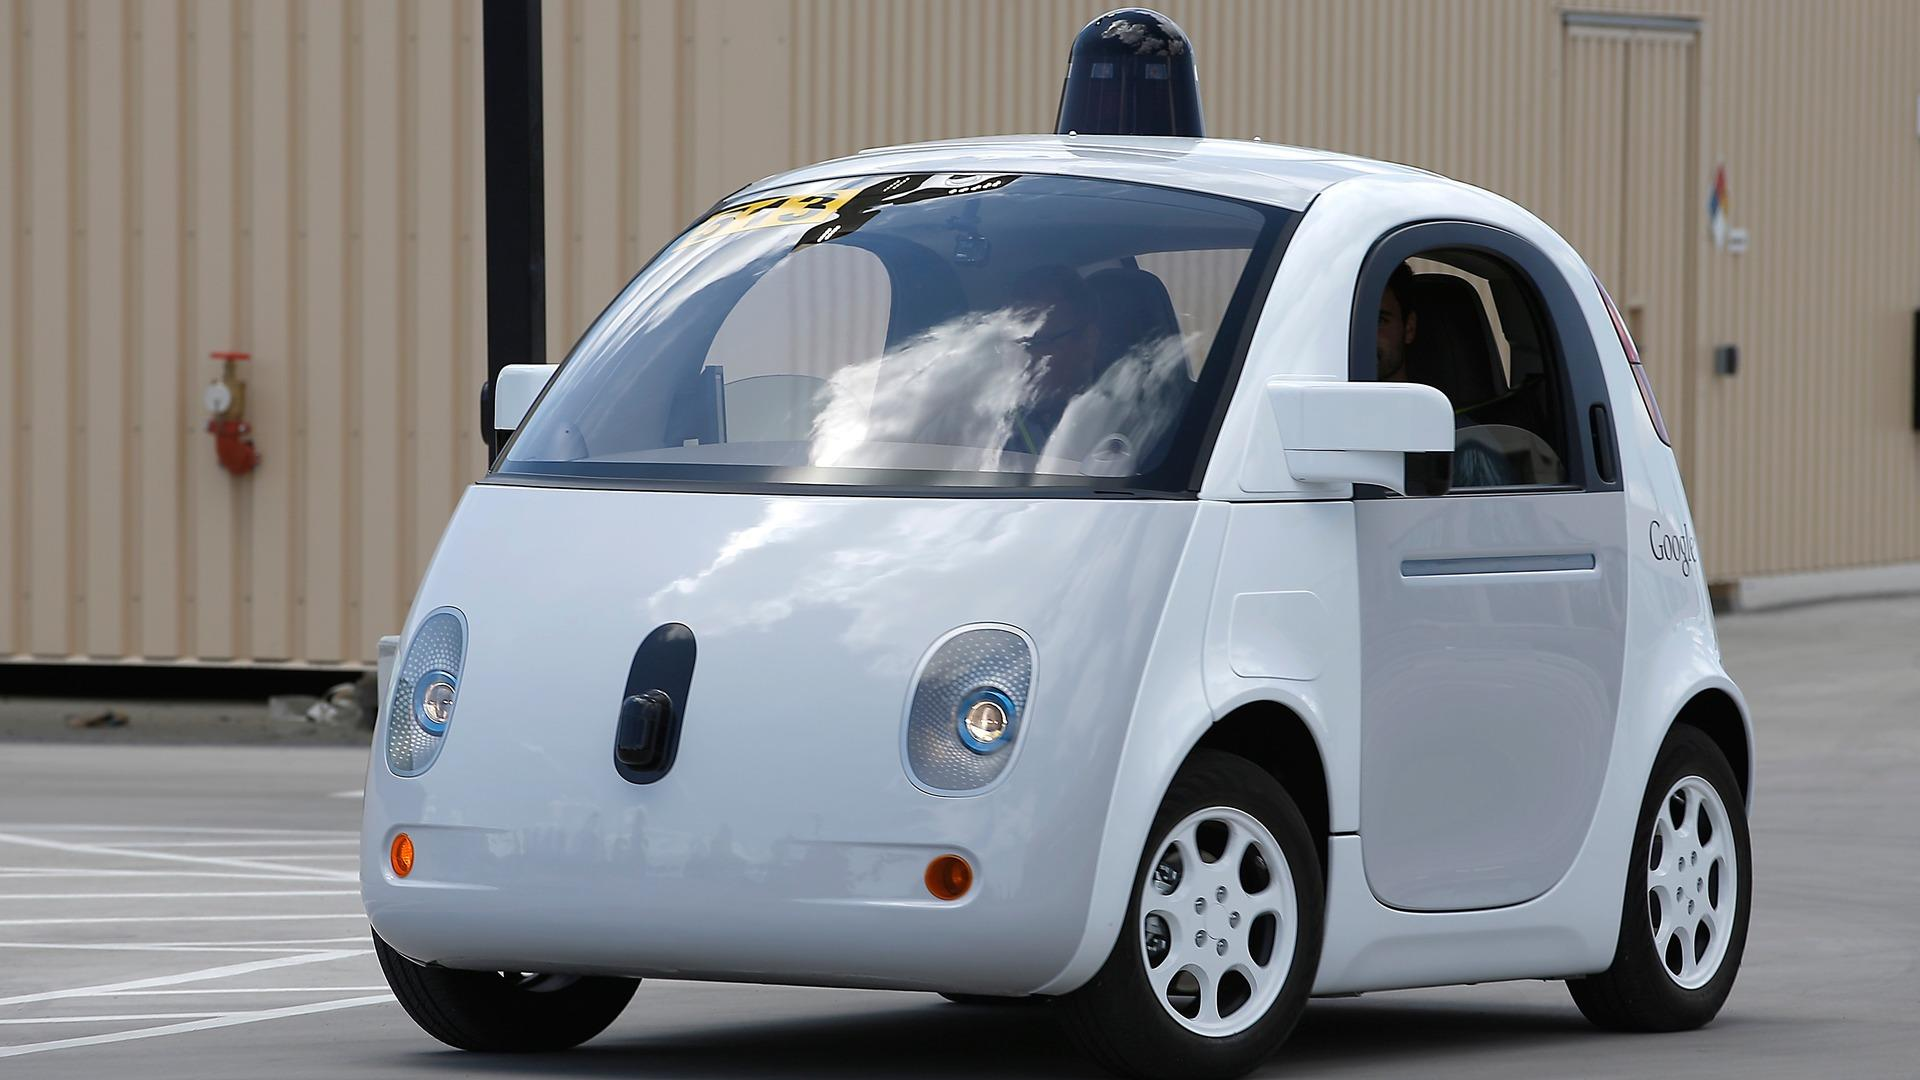 U.S. safety regulators: Google's self-driving systems qualify as drivers